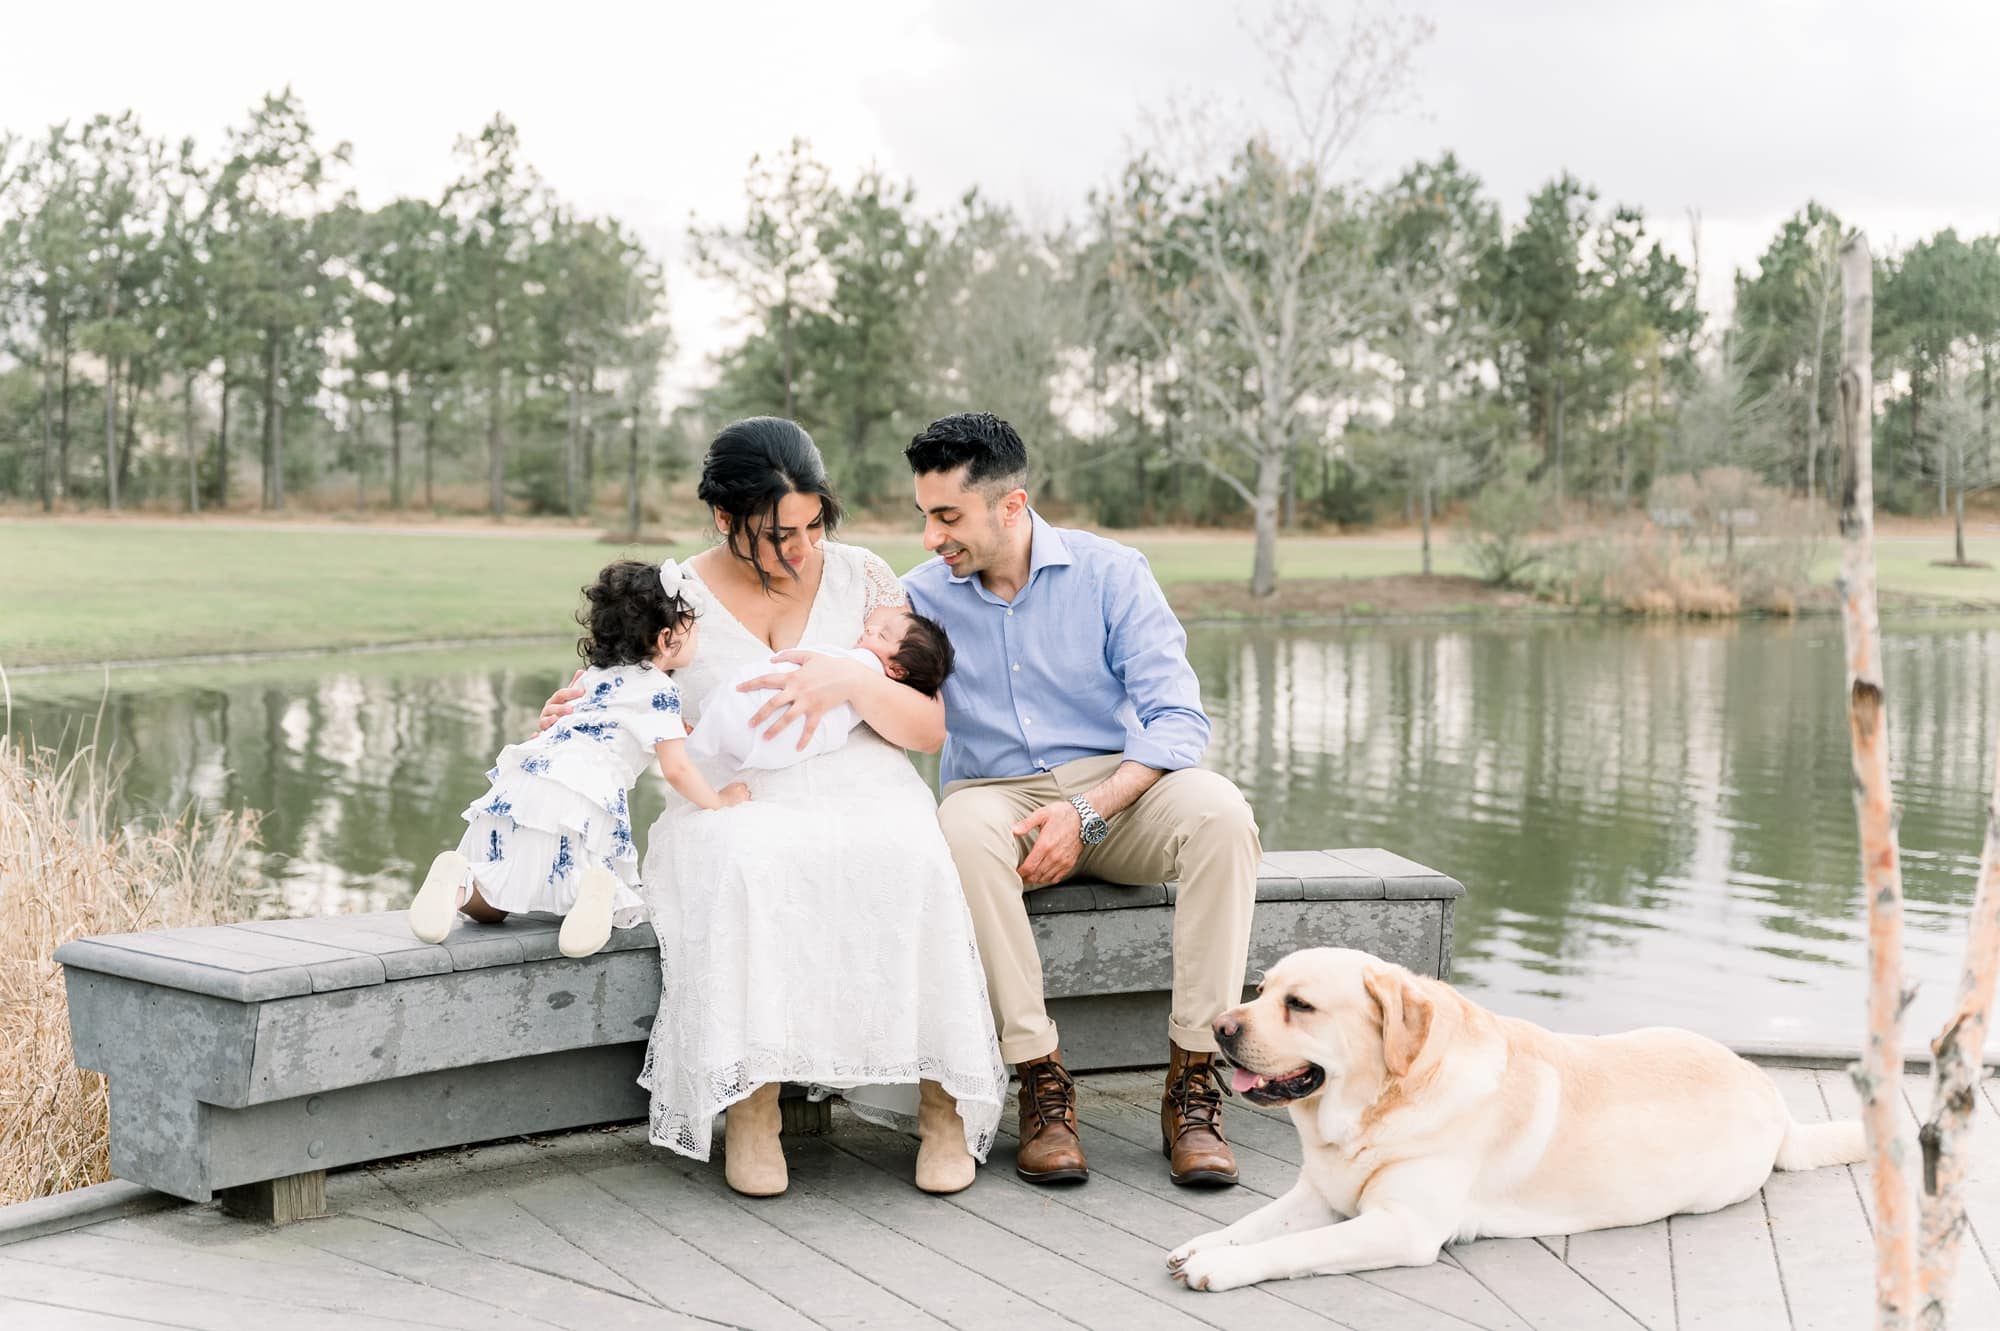 Sweet image of family sitting in park with newborn baby and family dog. Photo by Aimee Hamilton Photography.